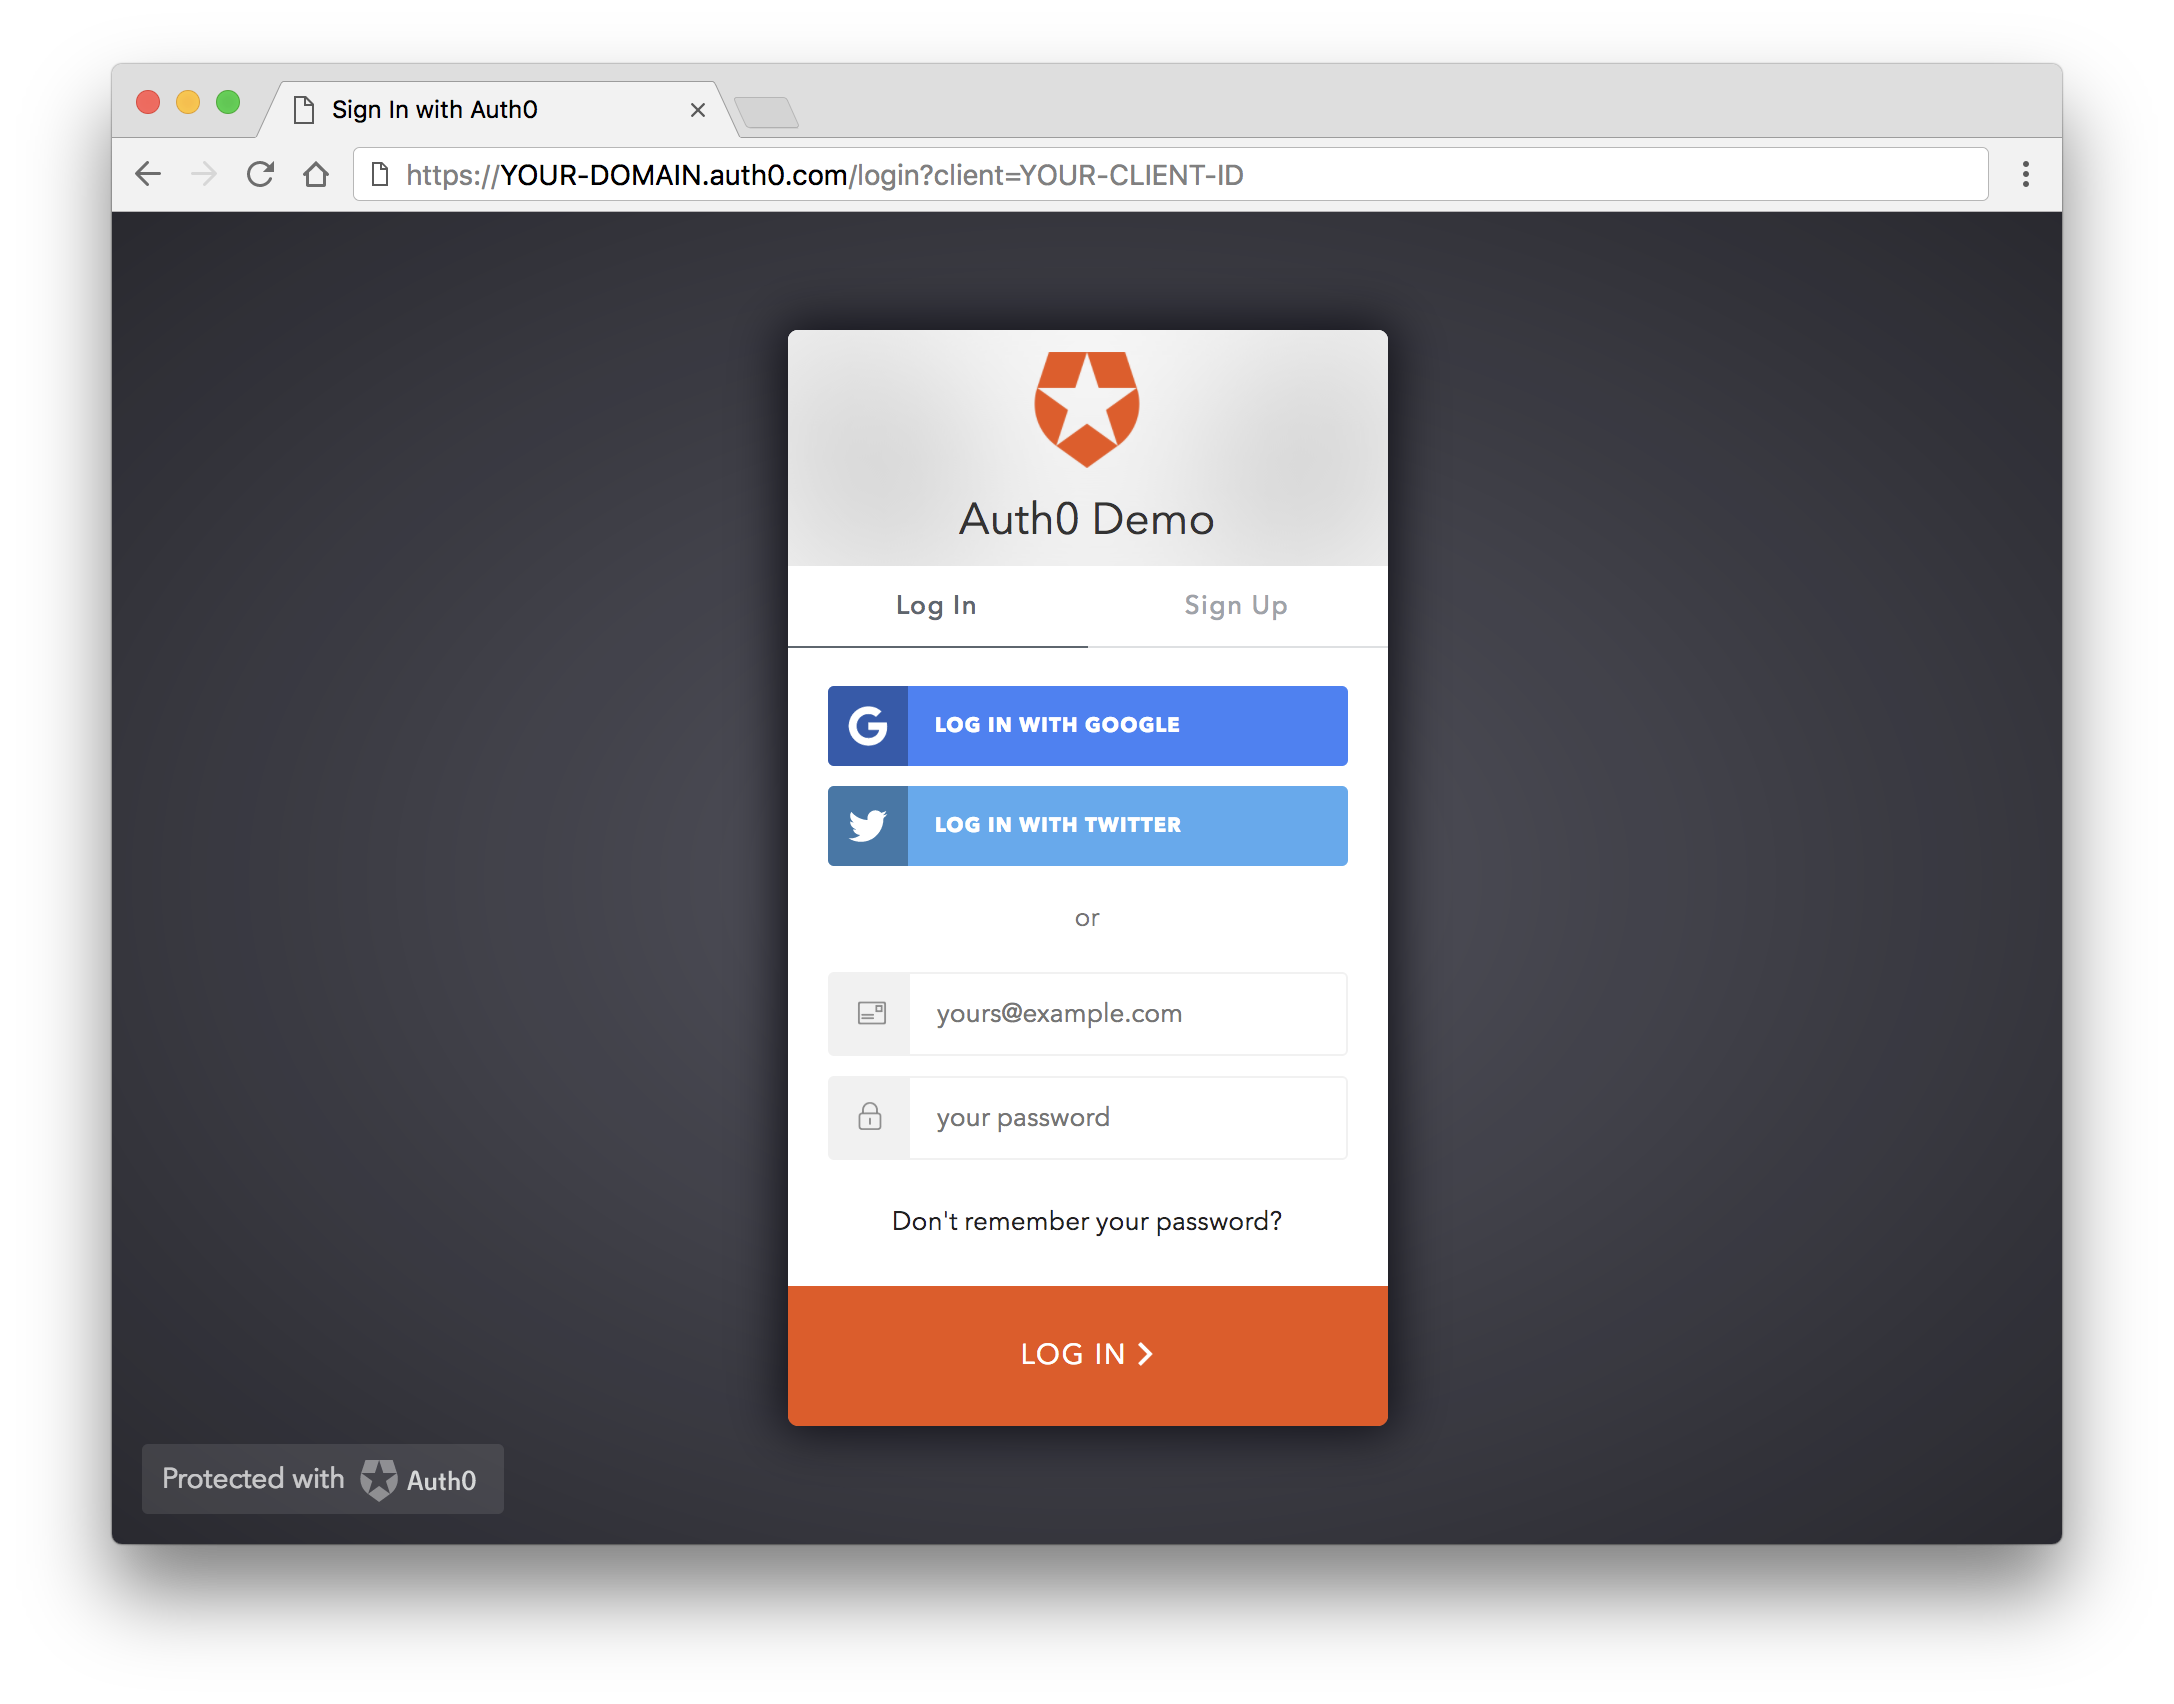 Auth0 Login Page